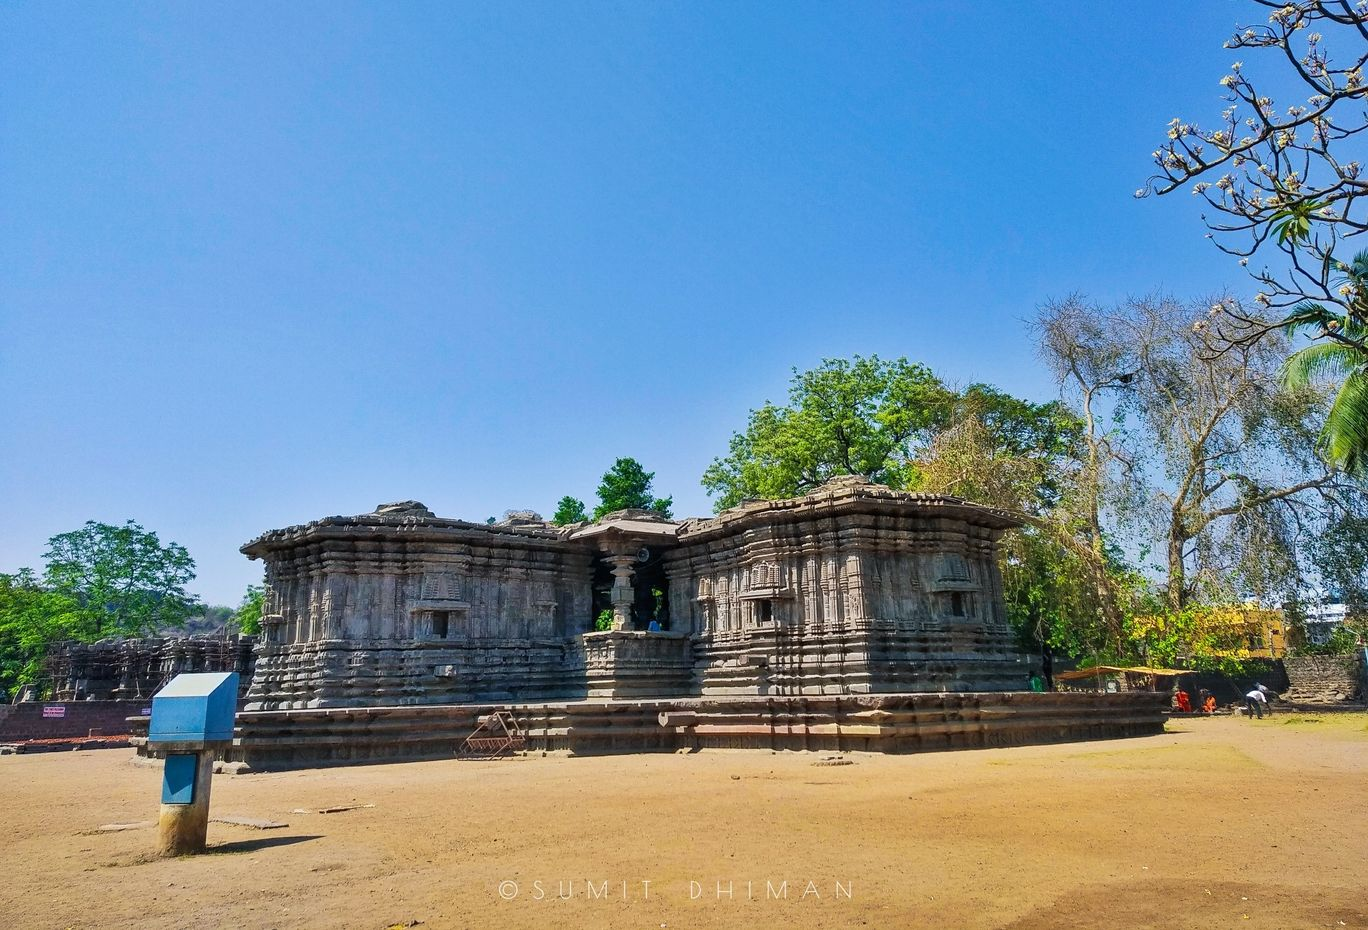 Photo of Thousand Pillar Temple By Sumit Dhiman